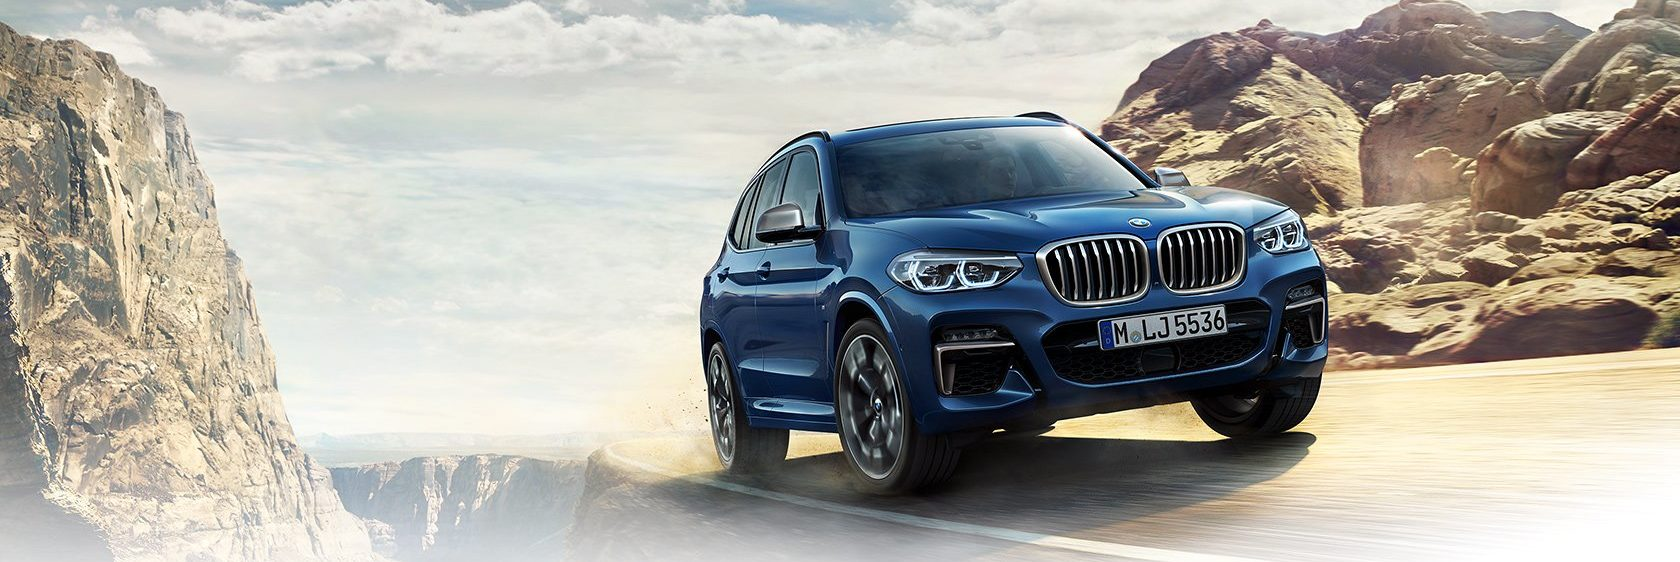 BMW X3 driving on a road near the edge of a cliff